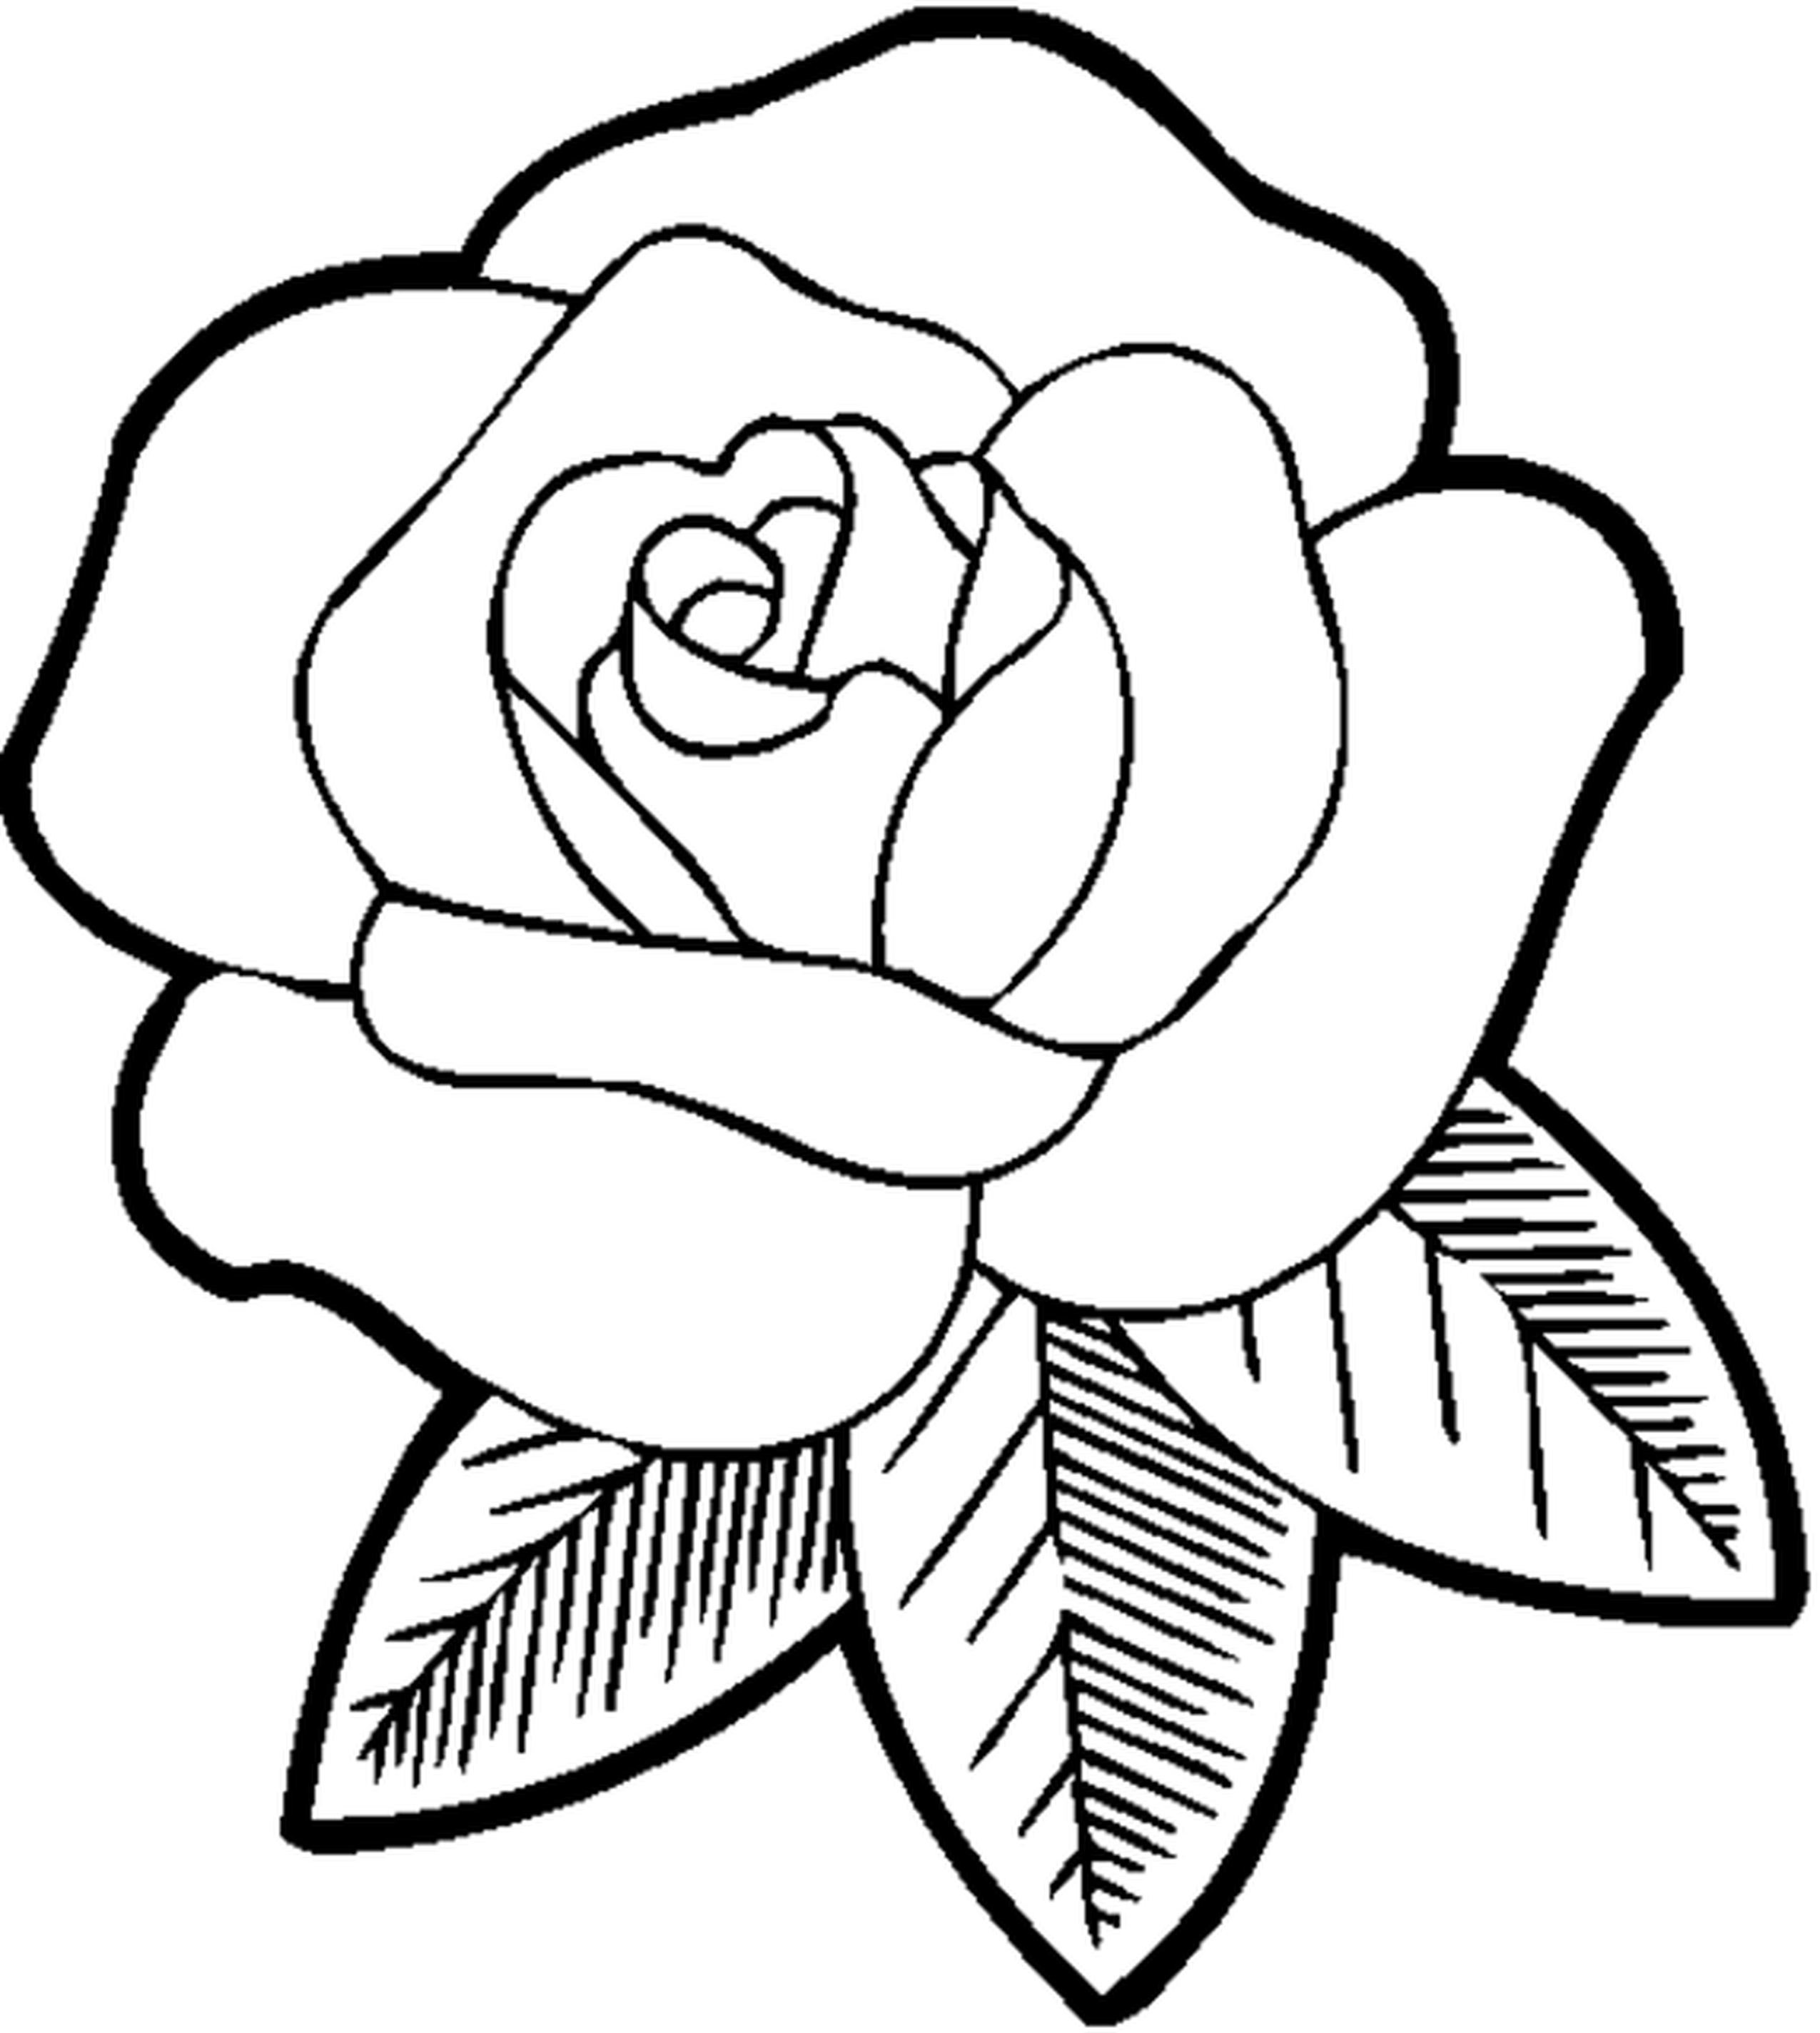 2550x2849 Flower Coloring Pages For Kids Elegant Pristine Printable Flowers